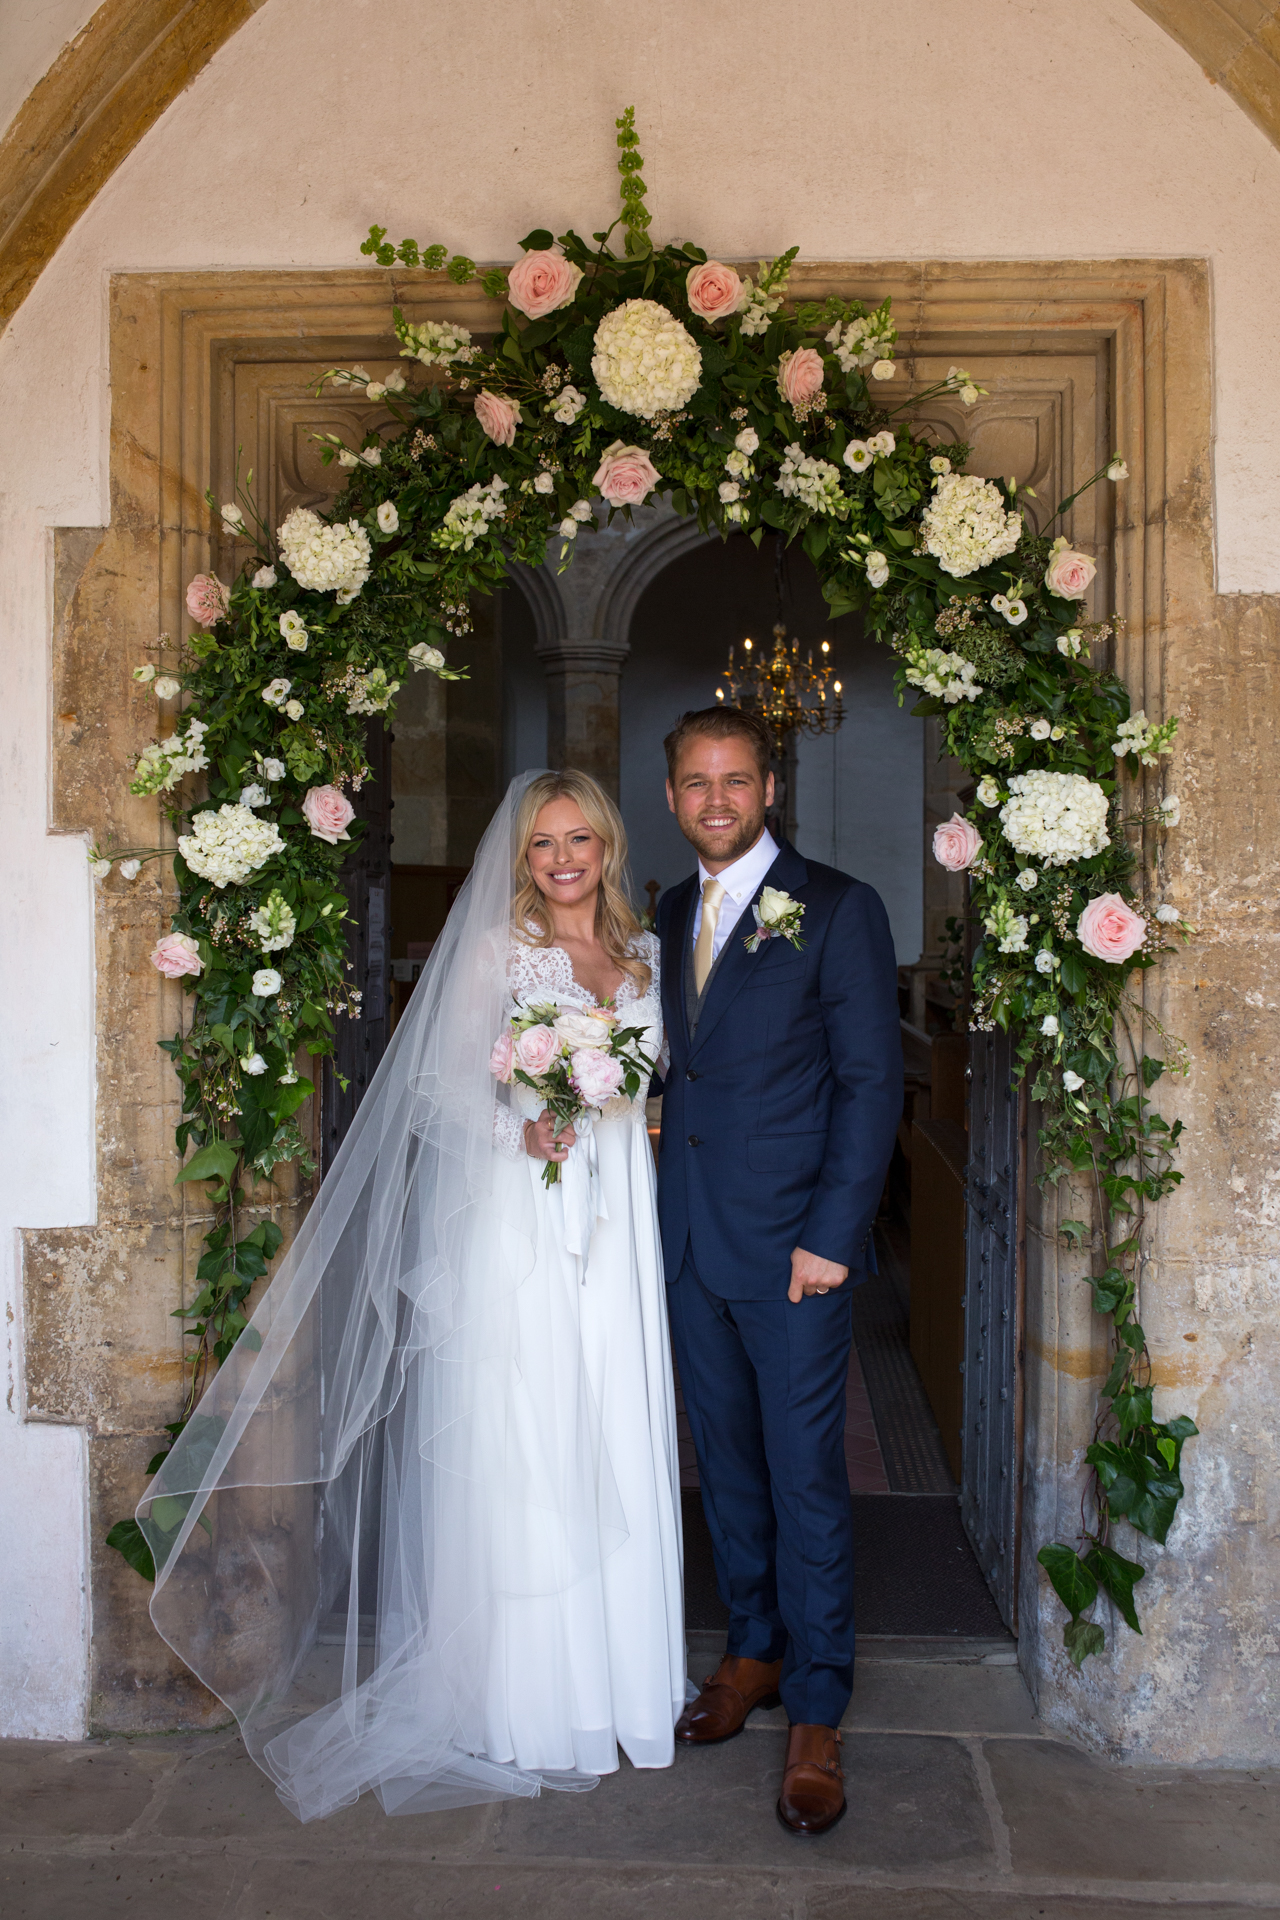 A portrait of a bRide and groom outside Mayfield Church in Kent